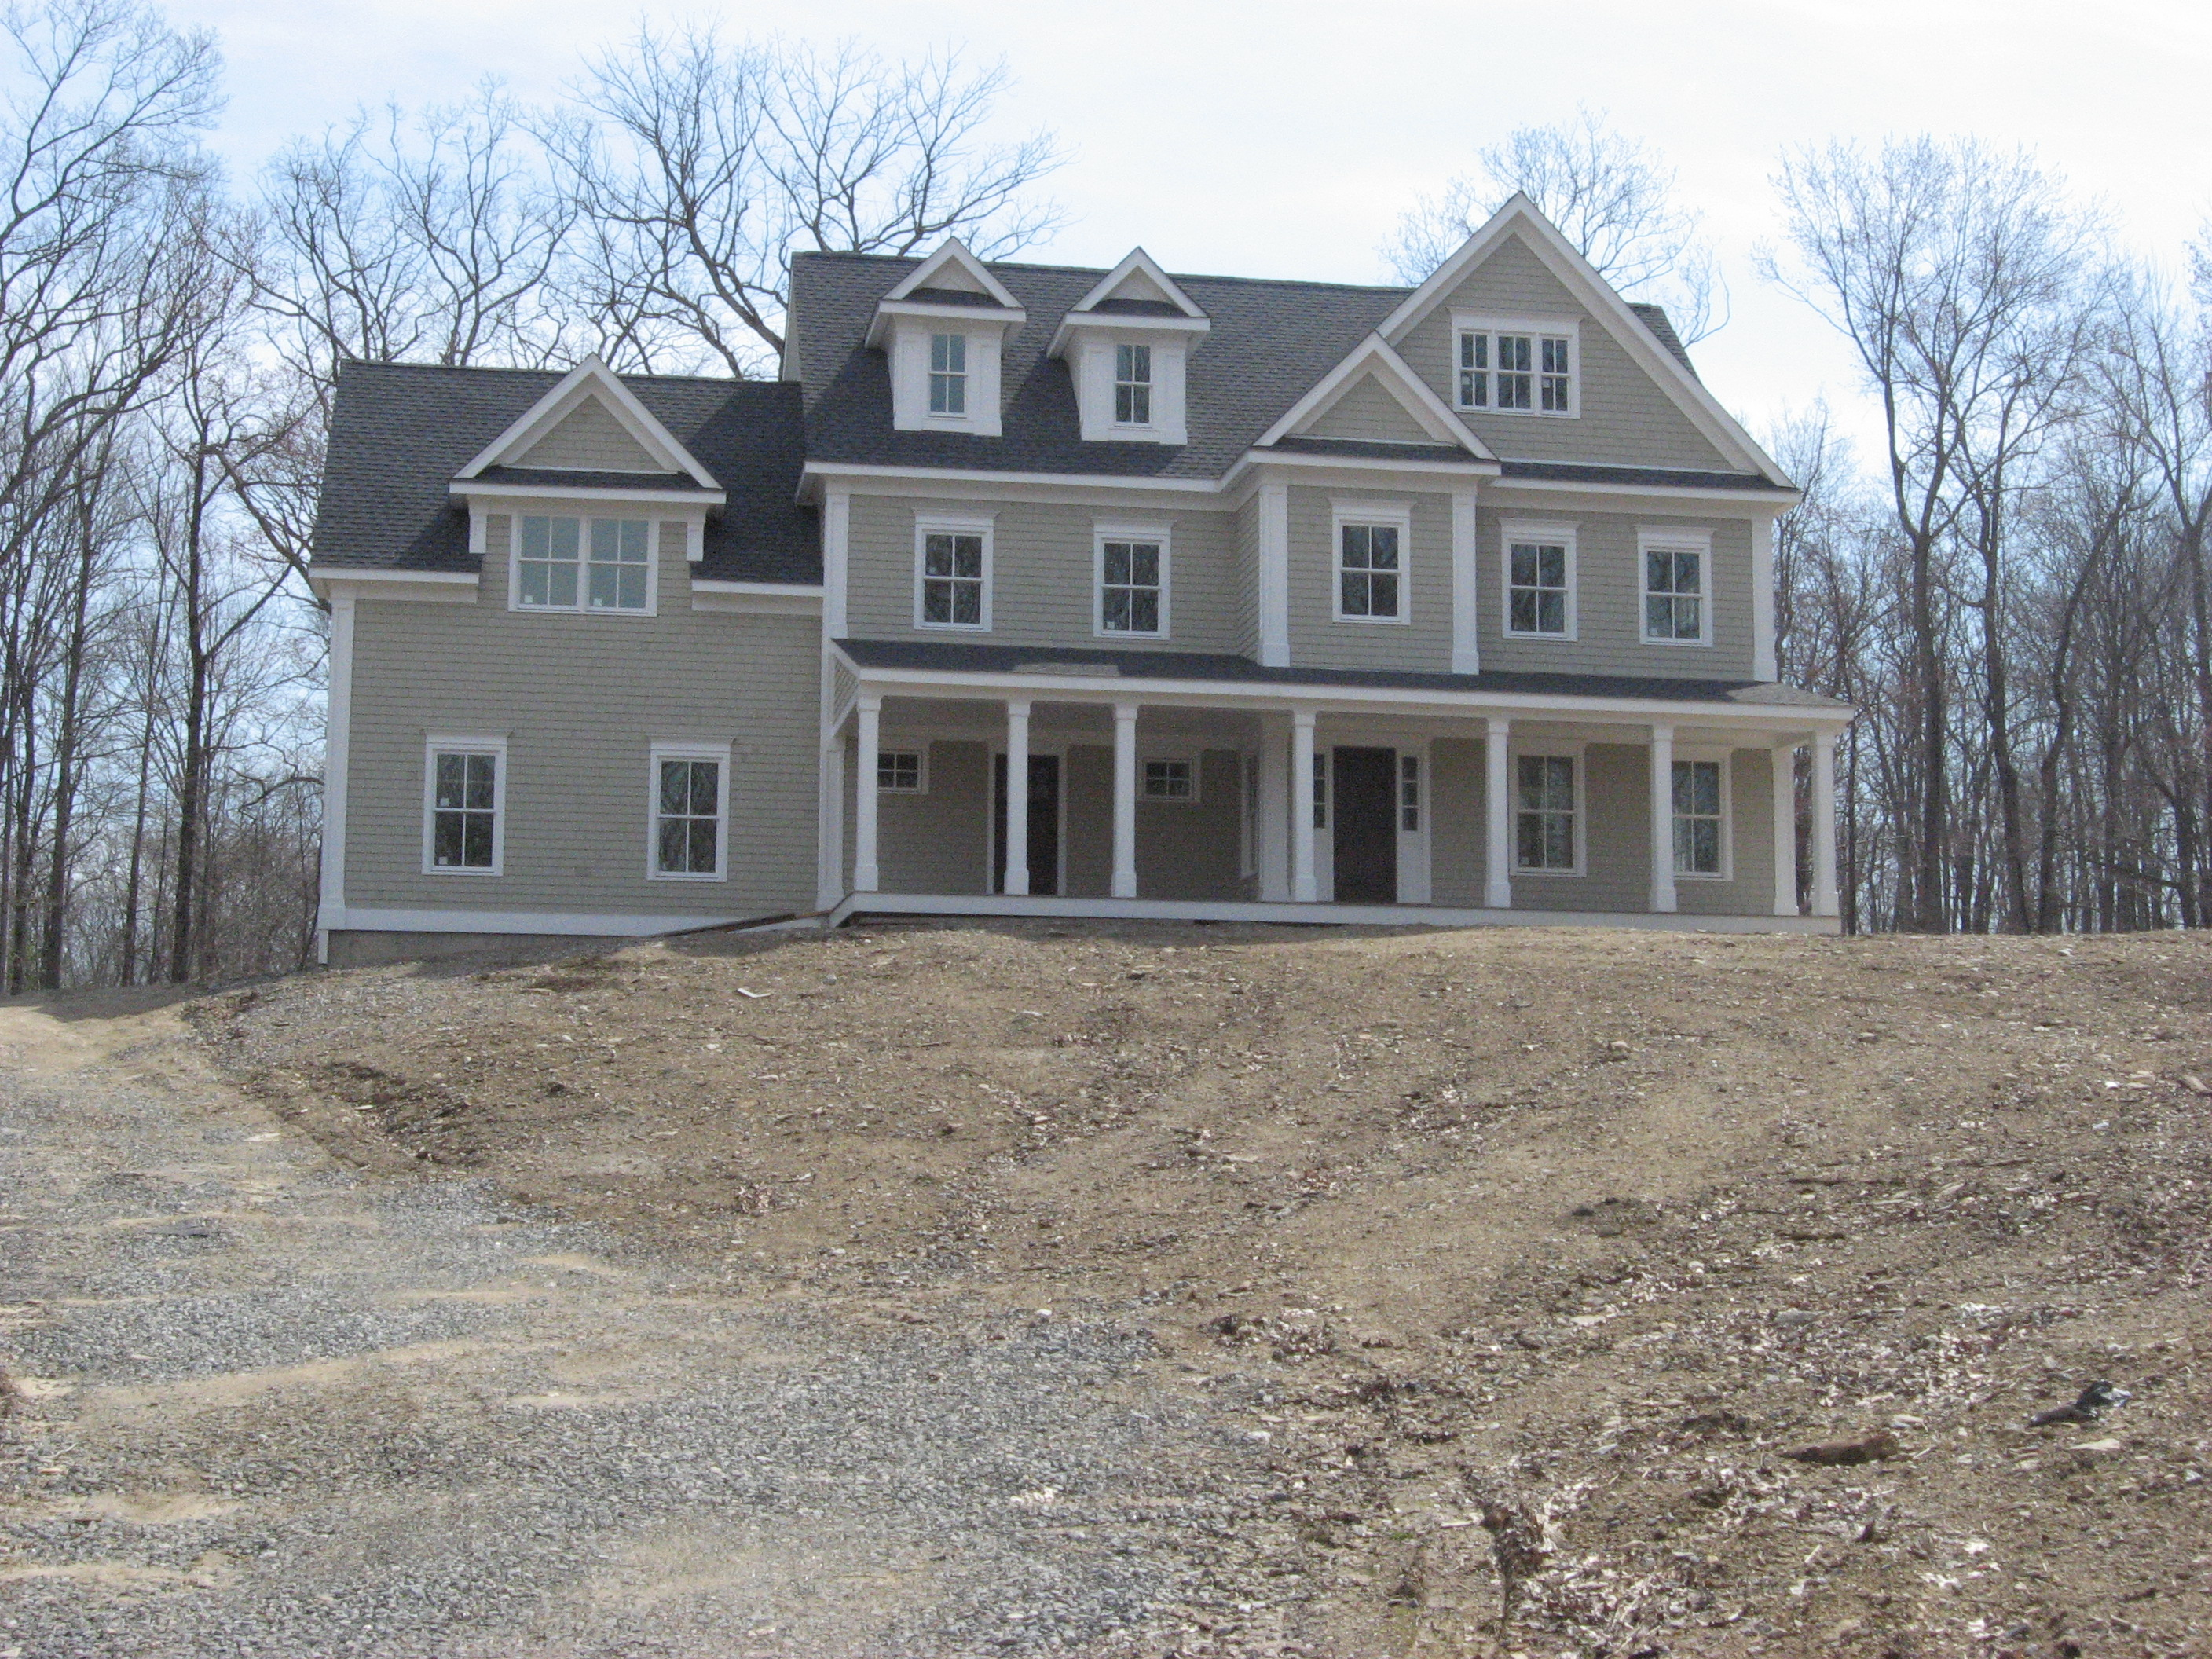 Single Family Home for Sale at Quality New Construction on Prestigious Street 24 Hillcrest Lane Weston, Connecticut 06883 United States